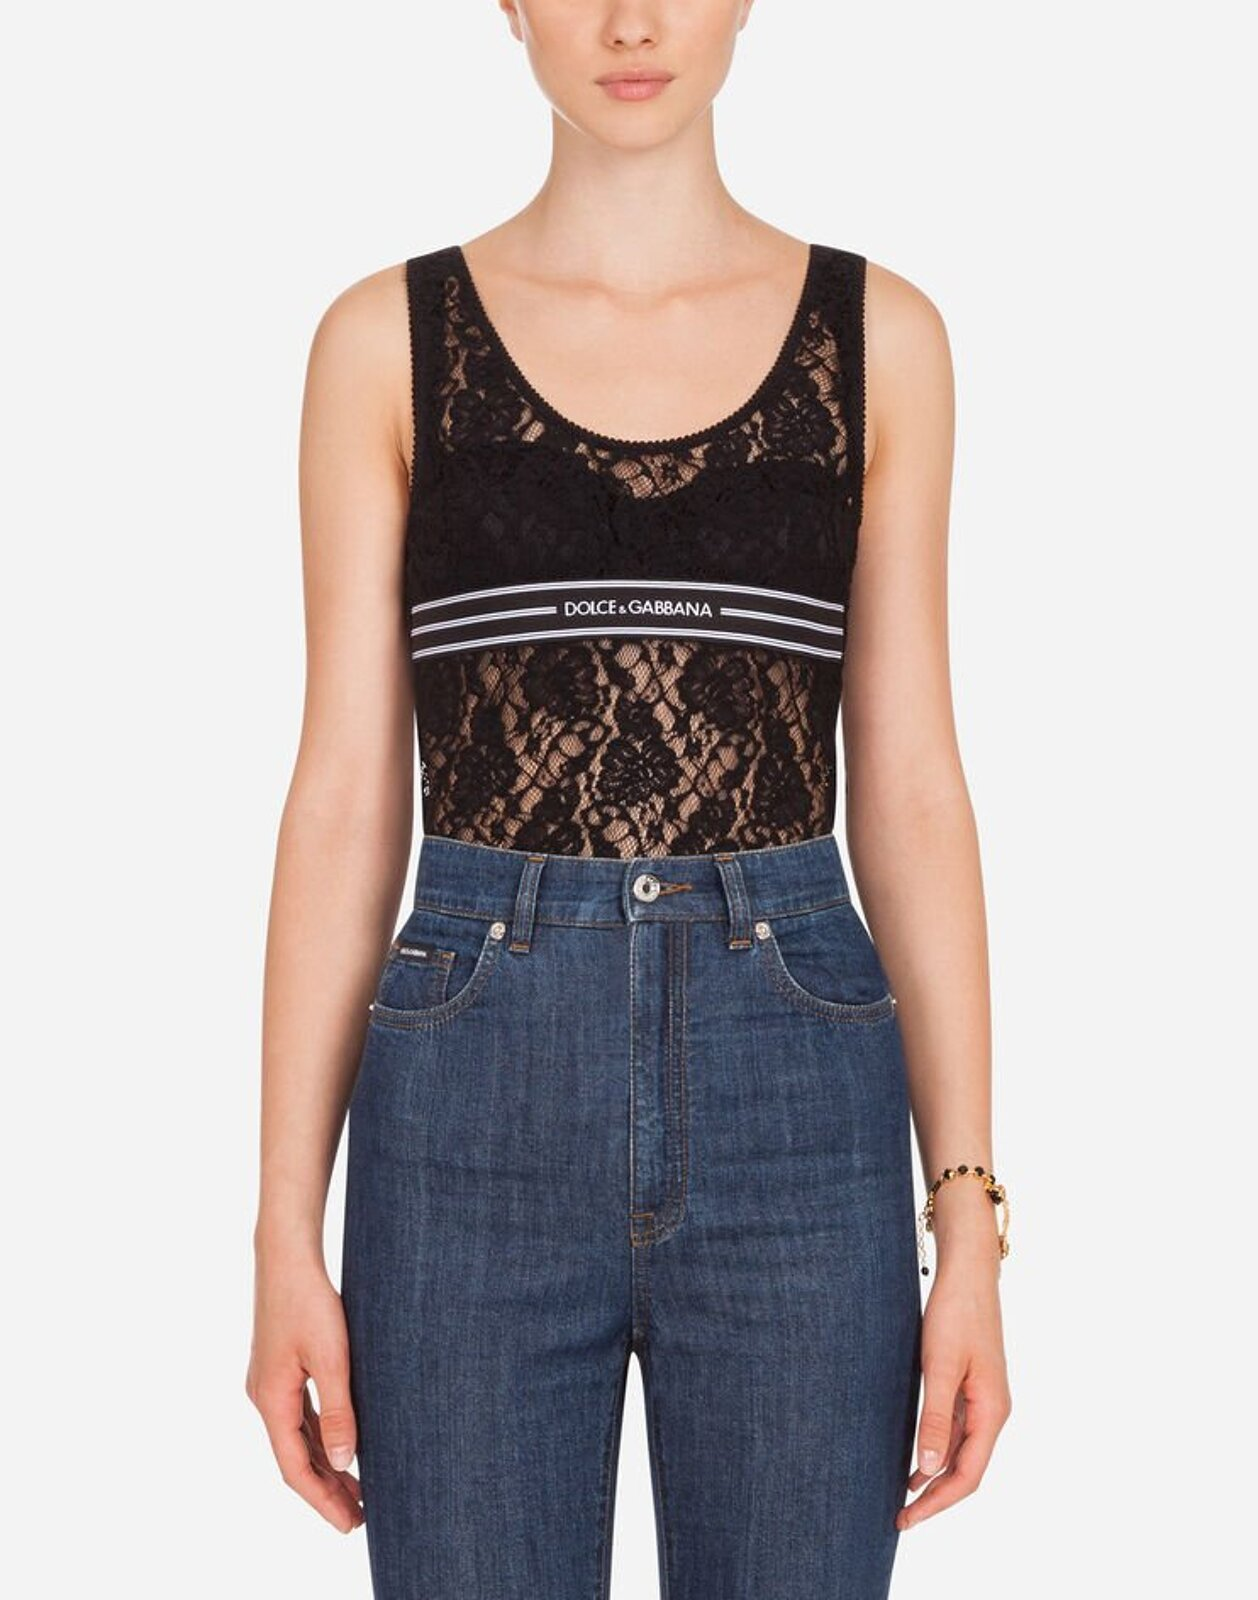 Lace Top With Logoed Elastic - Dolce & Gabbana